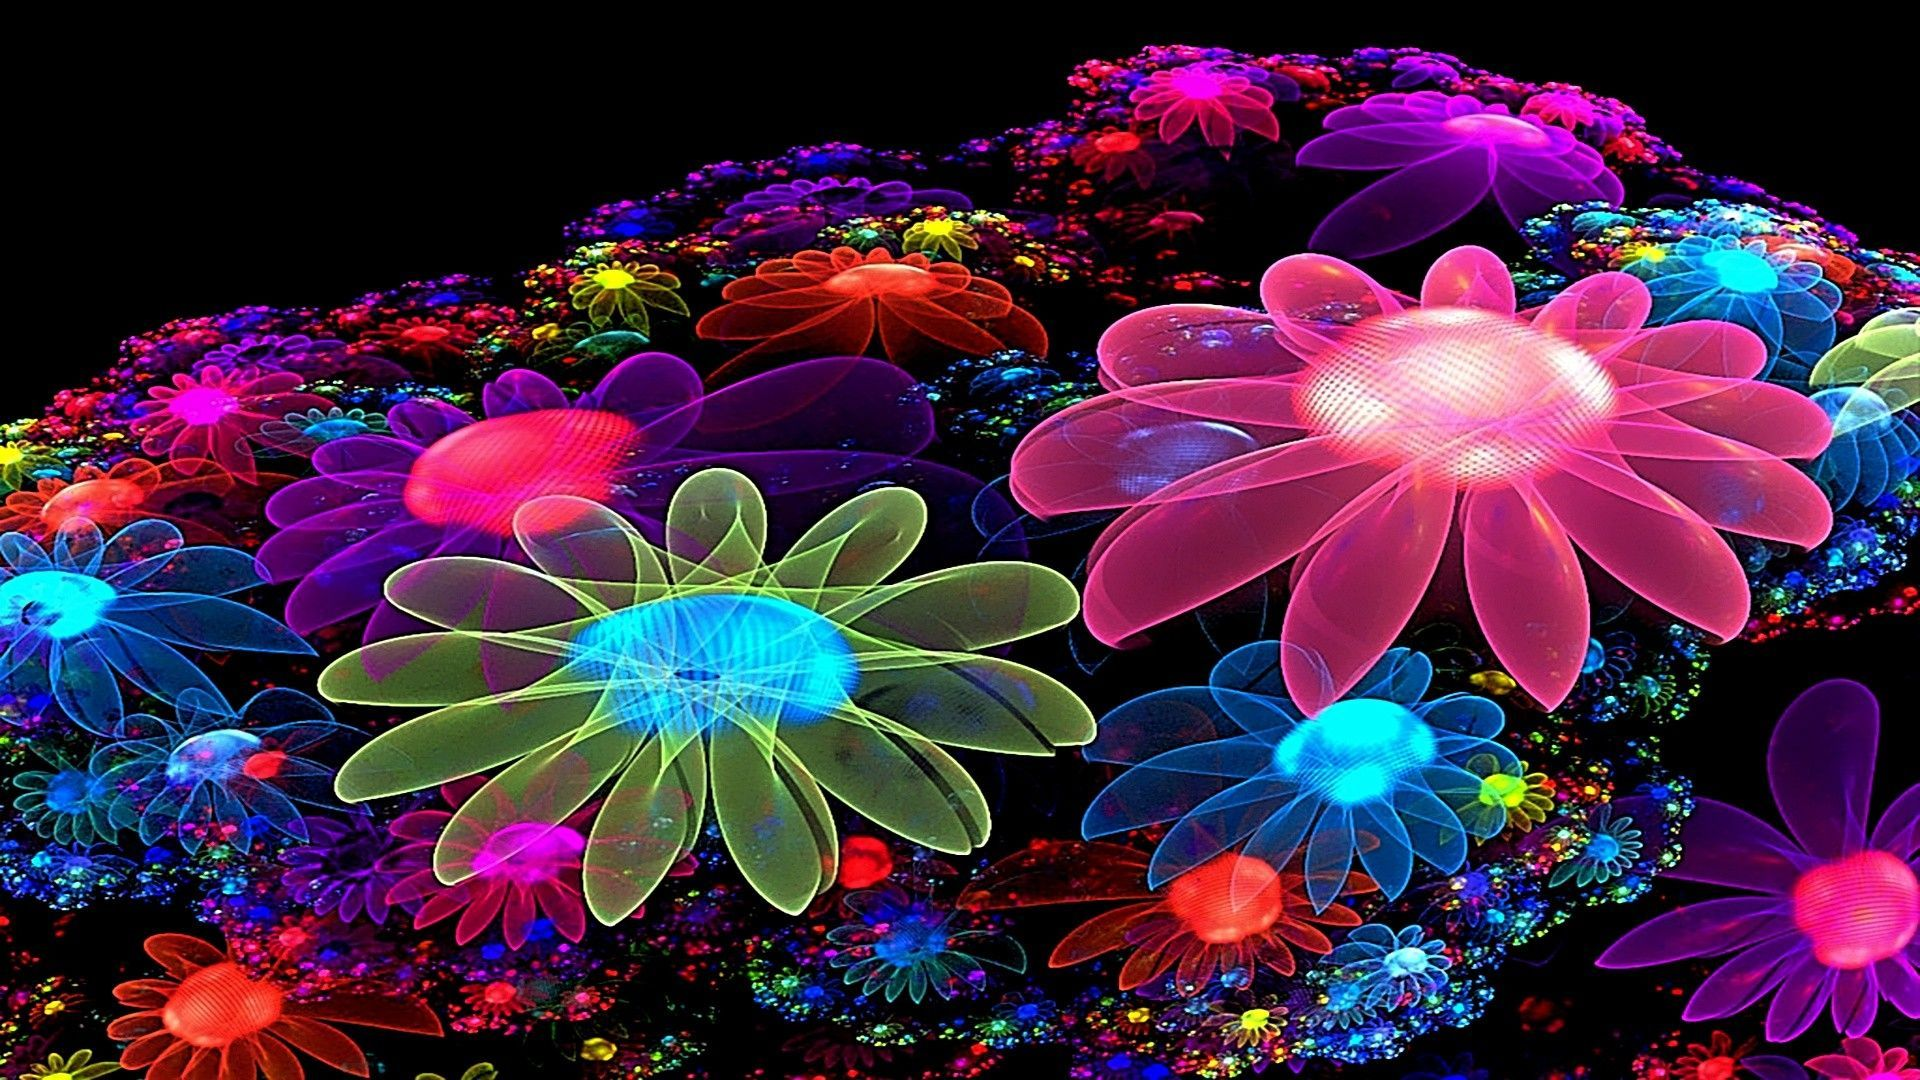 Mobile Glittering Nature Pictures Fhdq Flower Desktop Wallpaper Abstract Flowers Neon Flowers